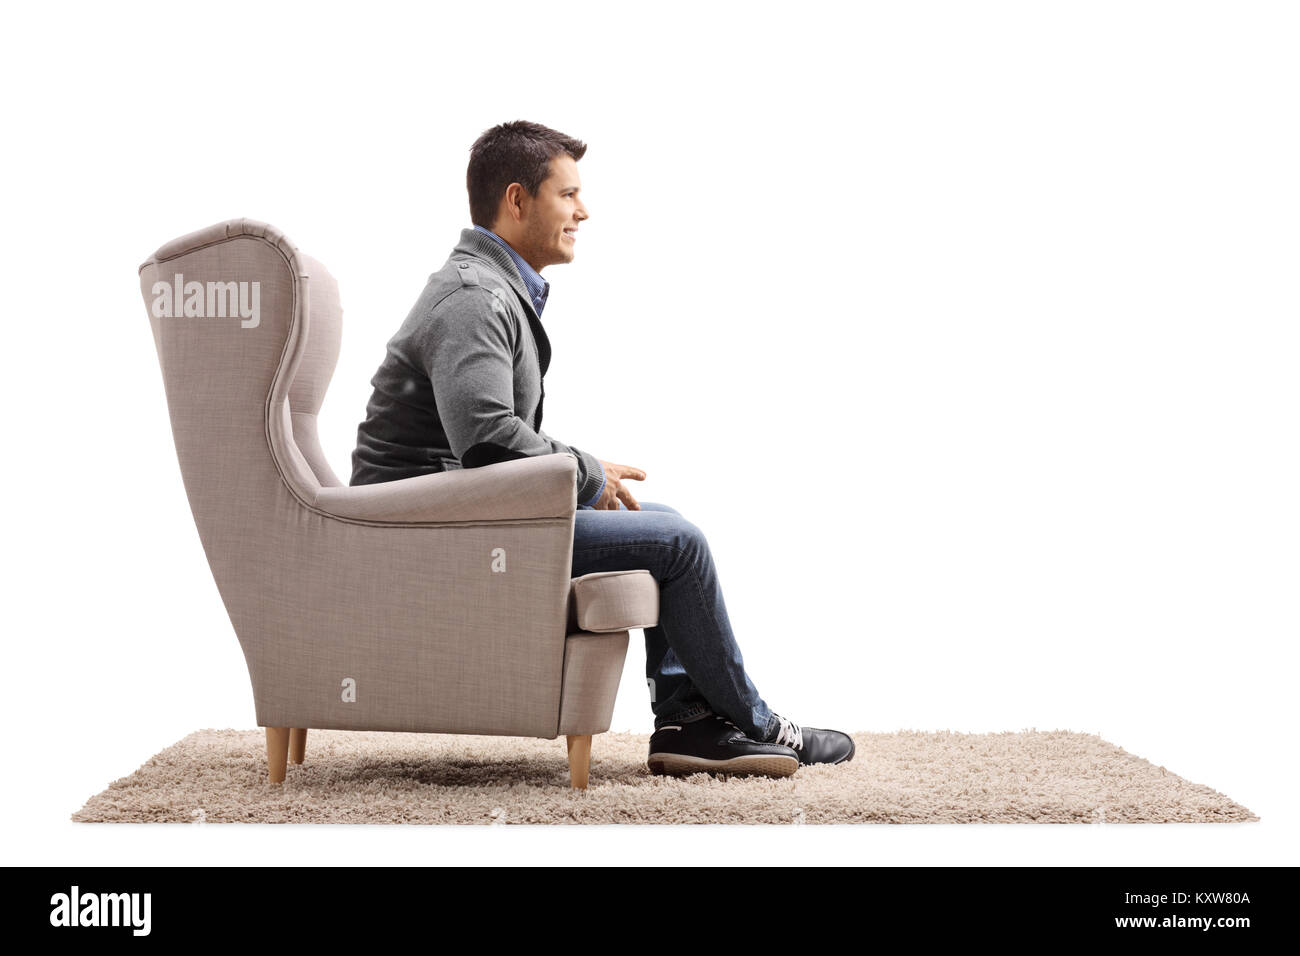 Man sitting in an armchair isolated on white background - Stock Image